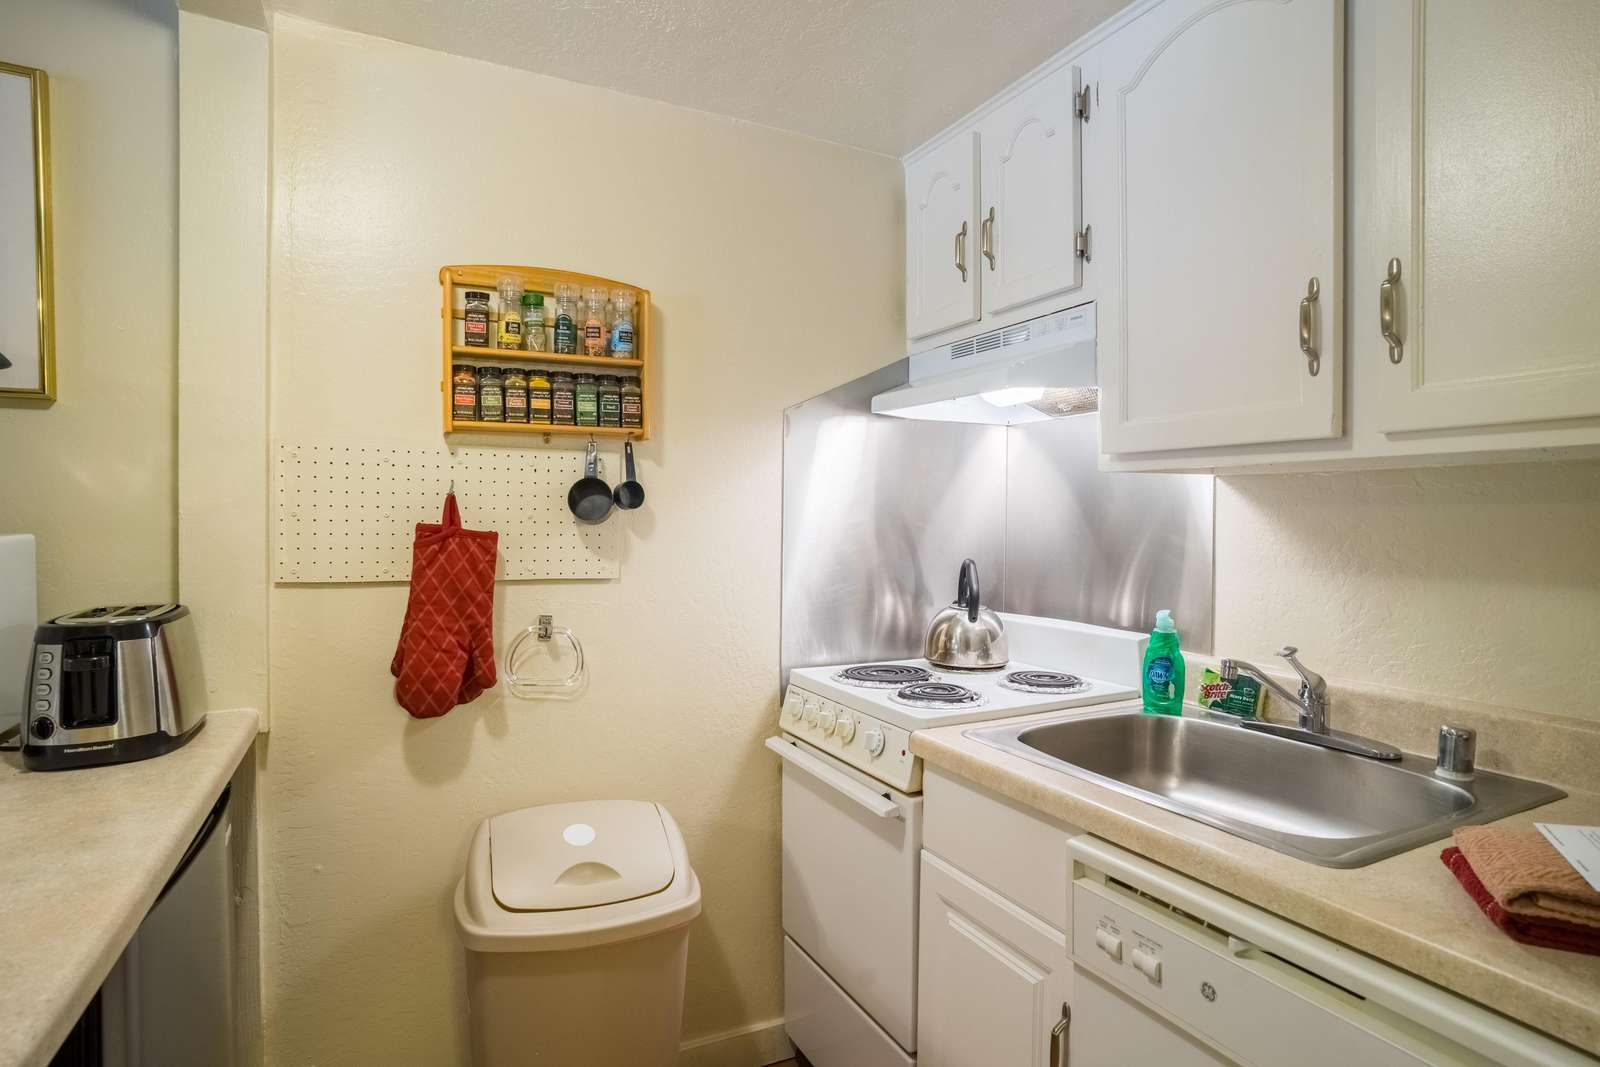 Kitchen includes dishes, pots & pans and utensils.